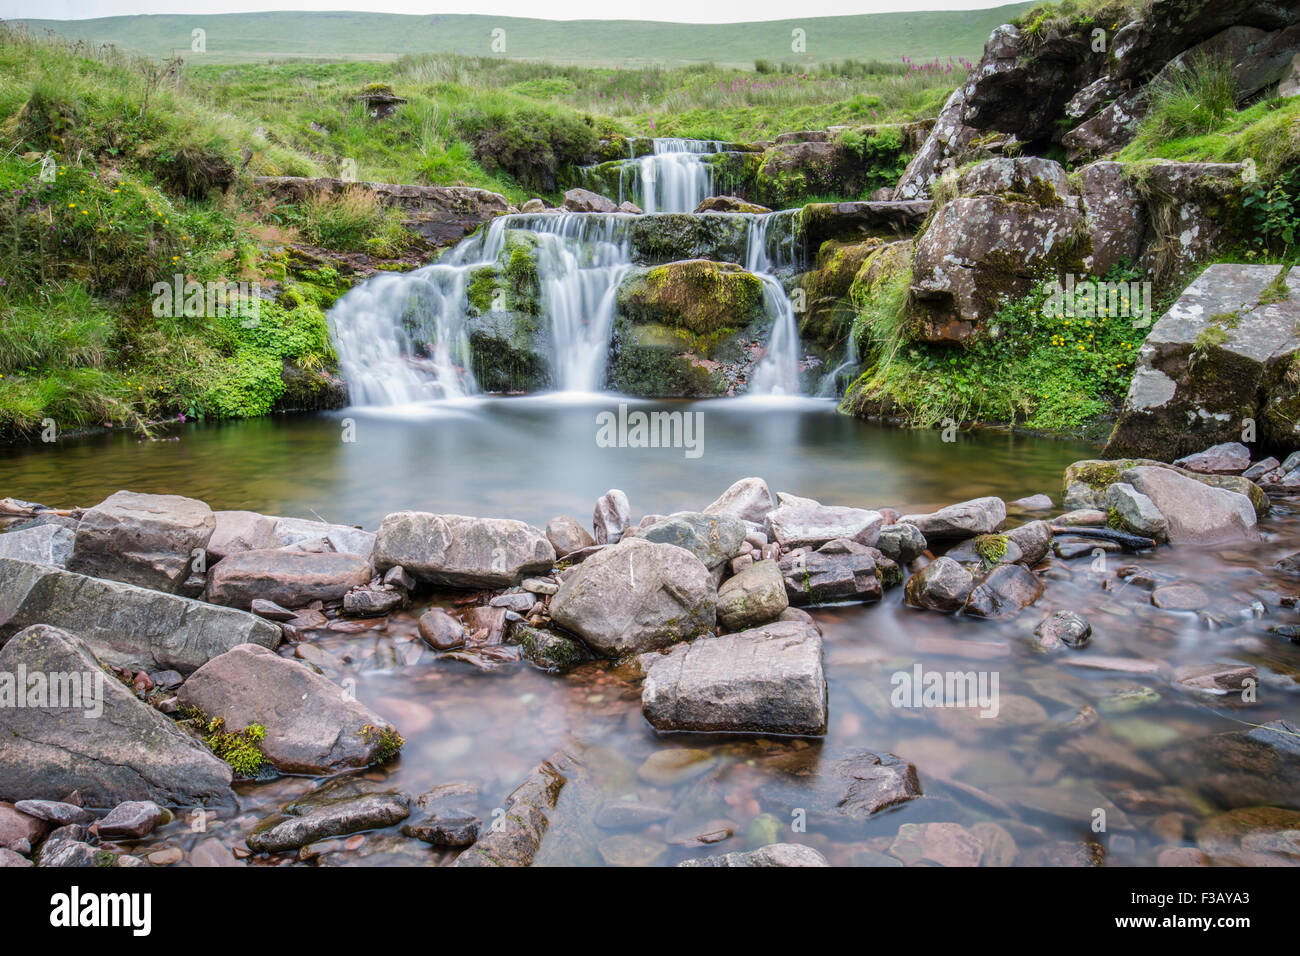 running water from the hills falling on rocks - Stock Image